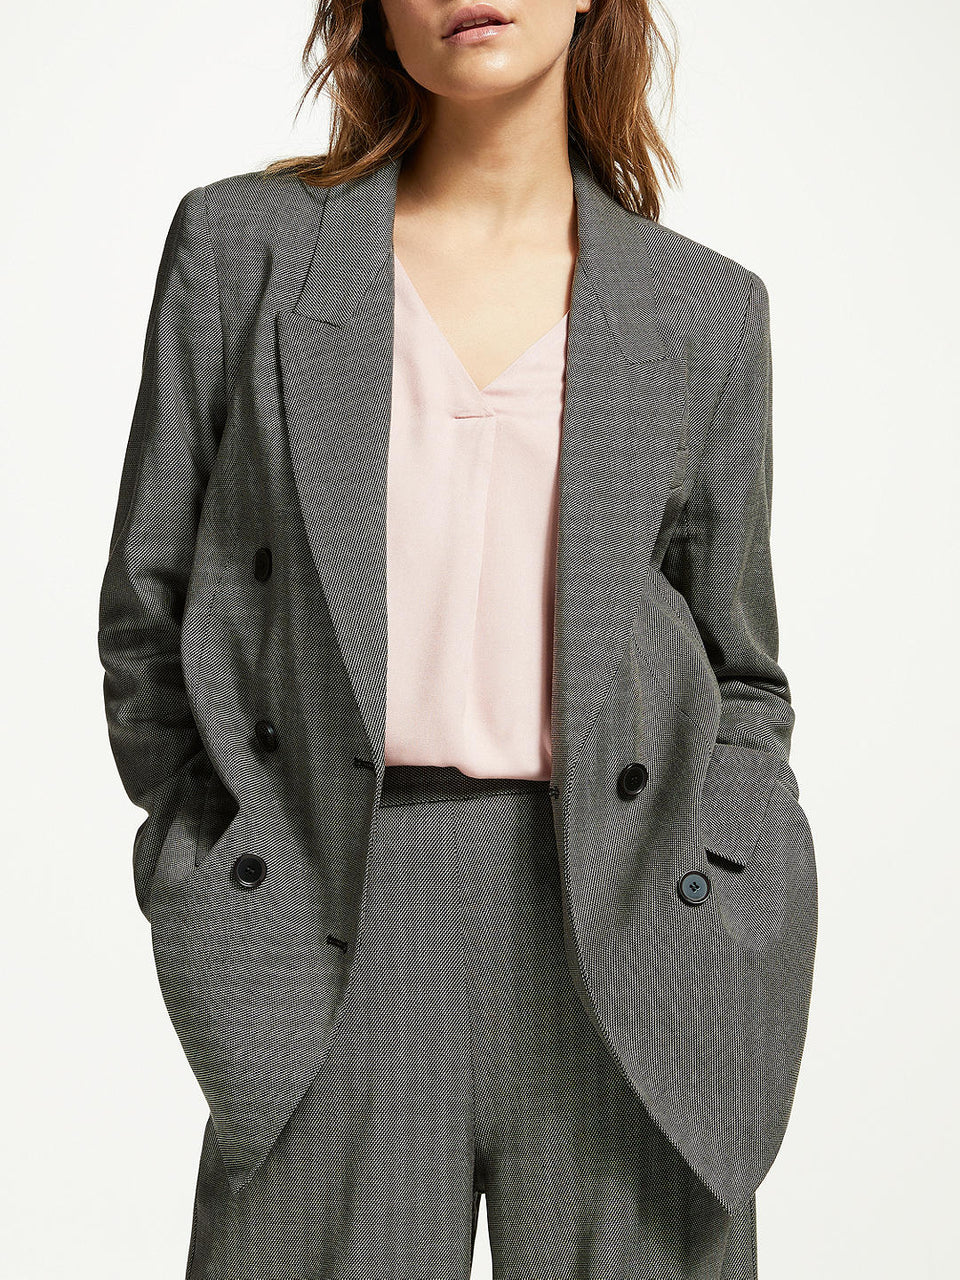 Checky Blazer in Grey